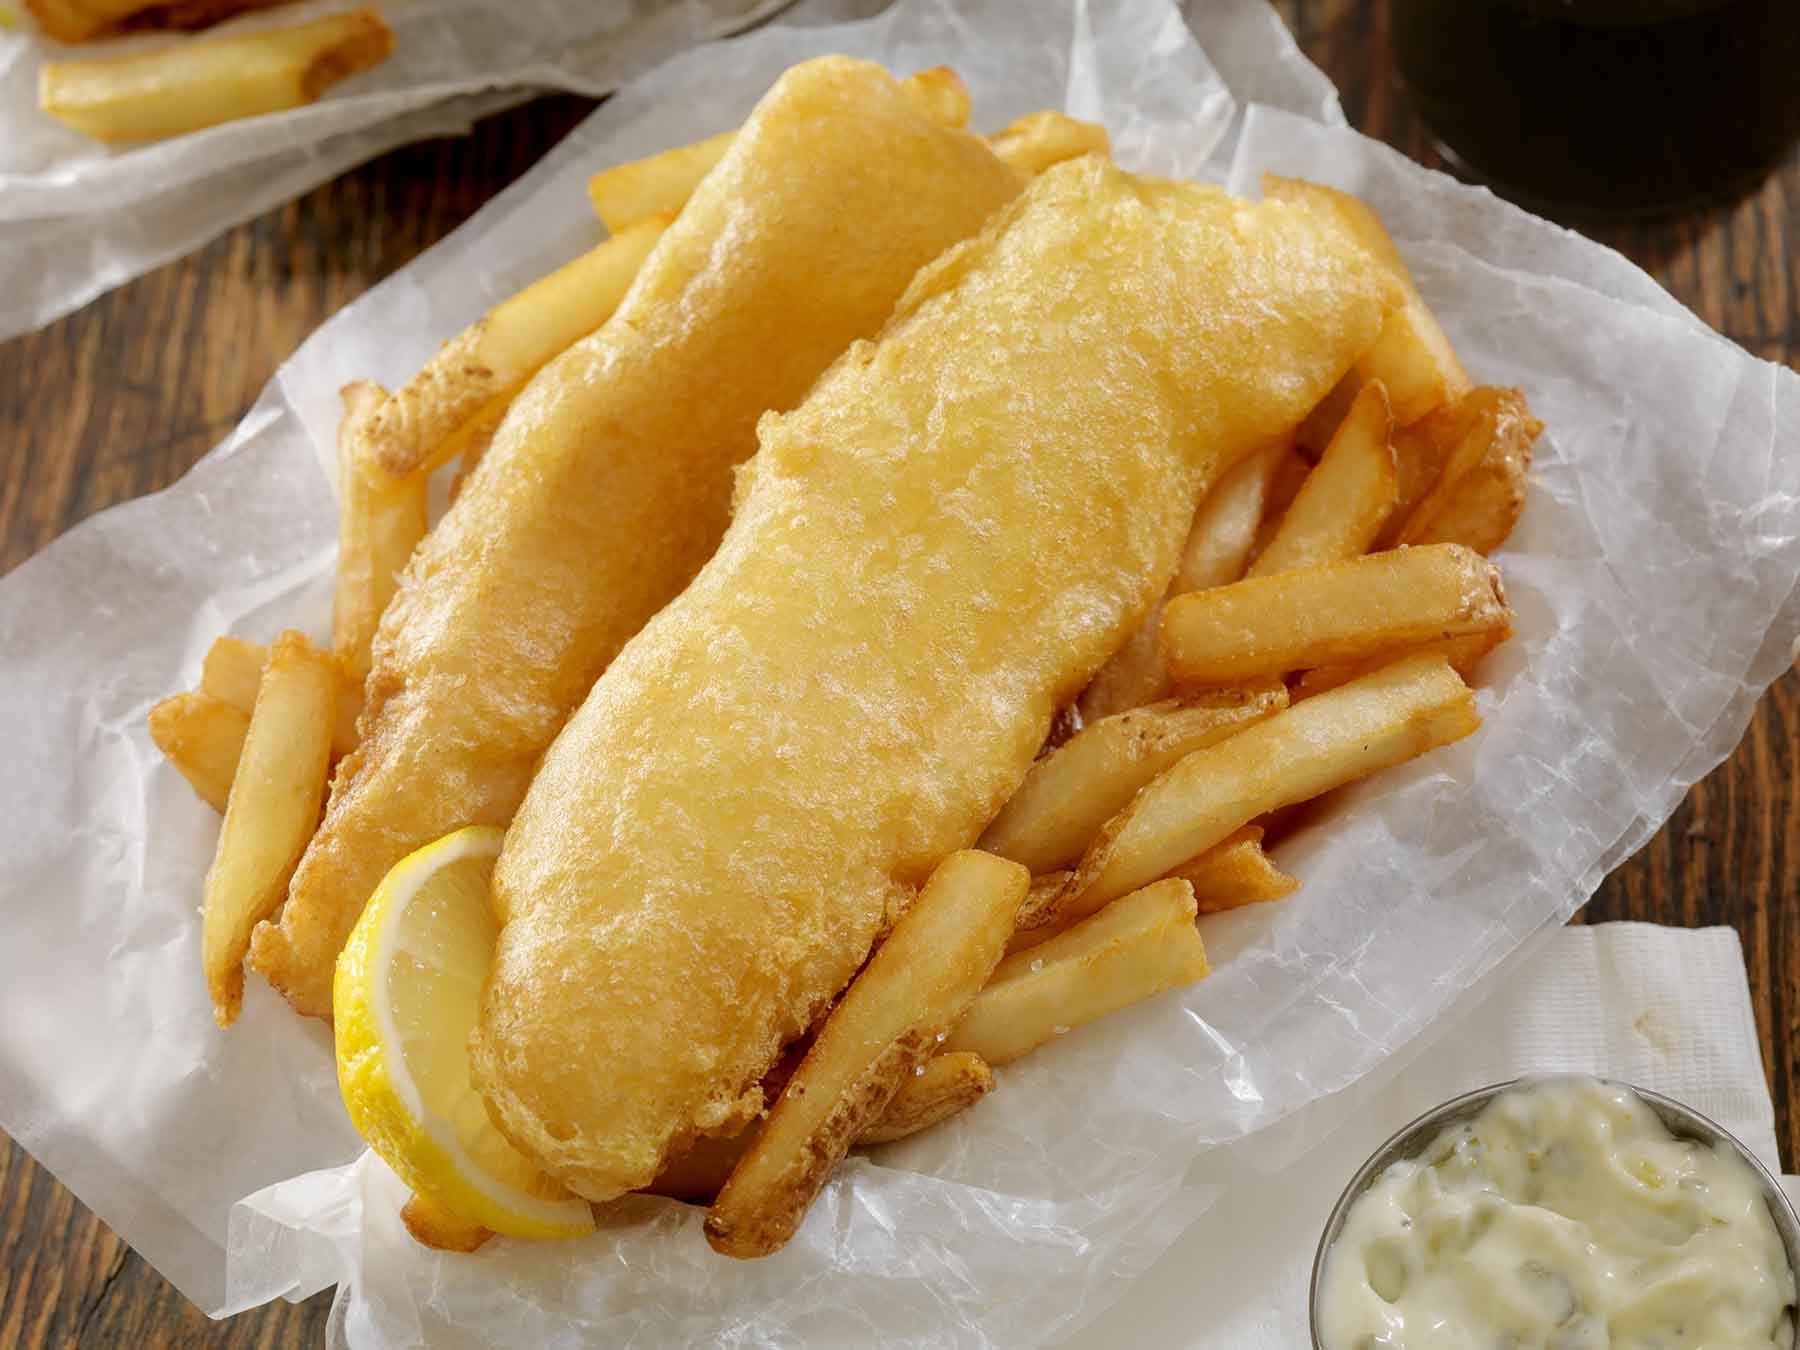 Deep fried fish and fries basket